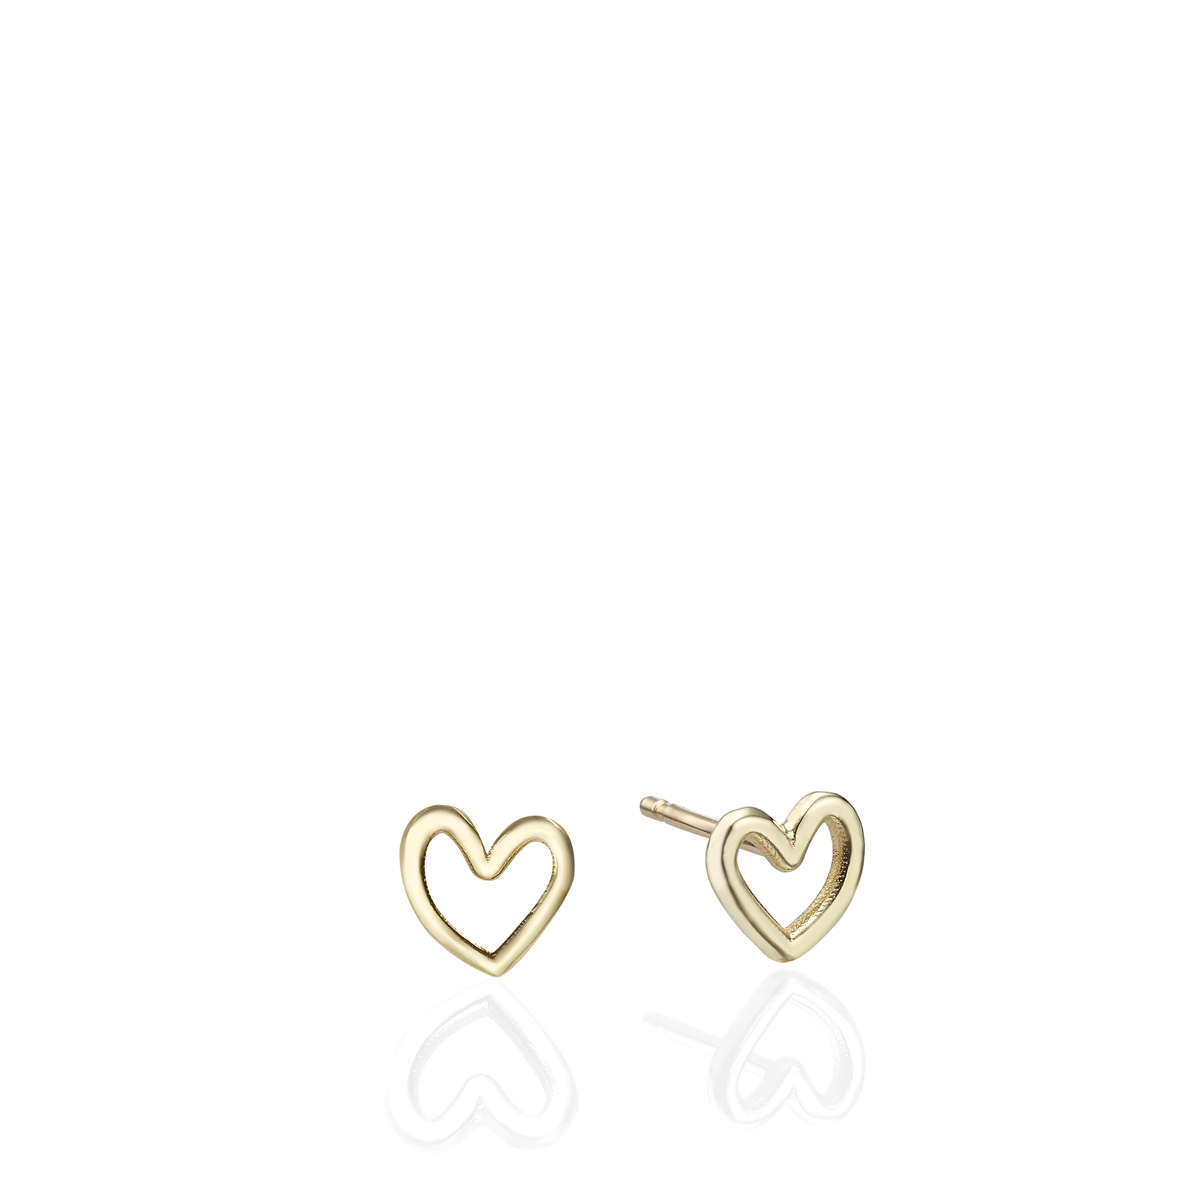 Solid Gold Small Heart Earrings